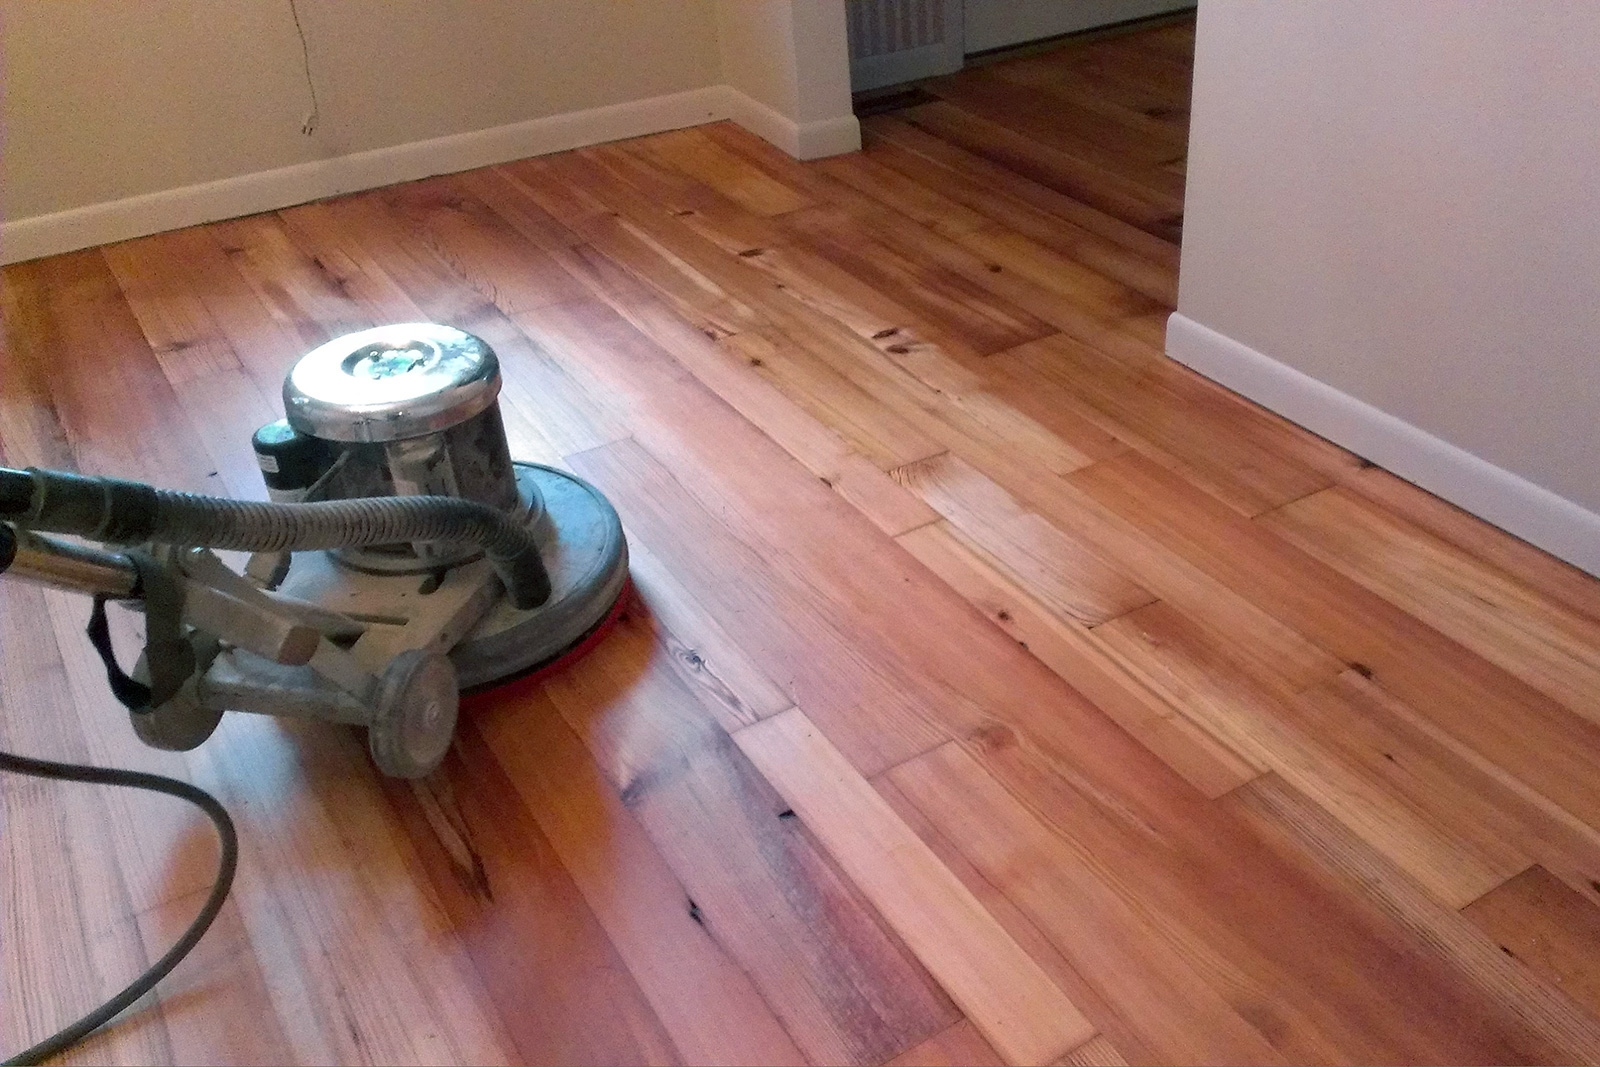 Stripping Old Wax From Wood Floors